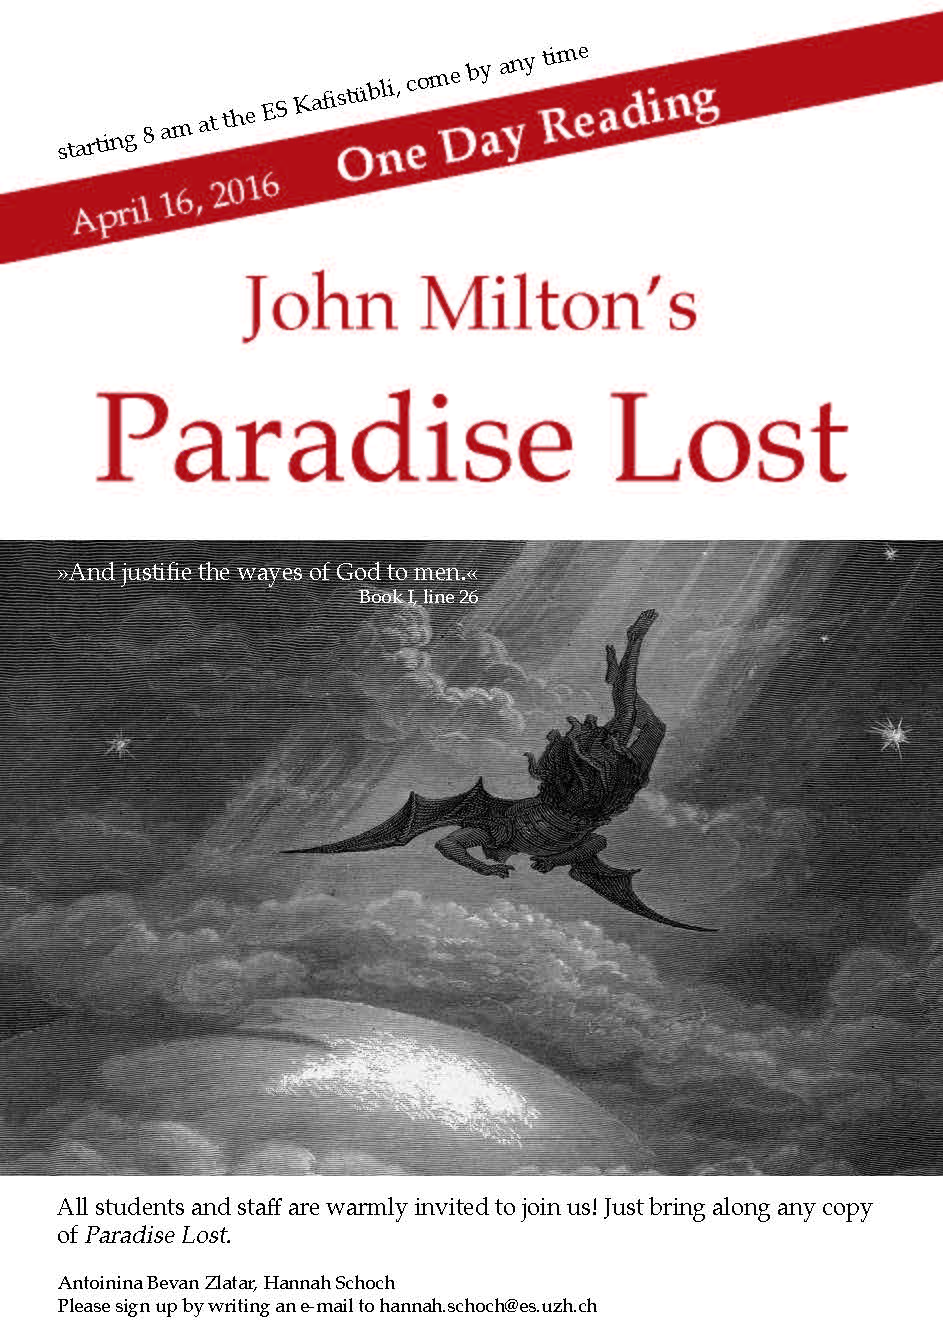 One-Day Reading of Paradise Lost